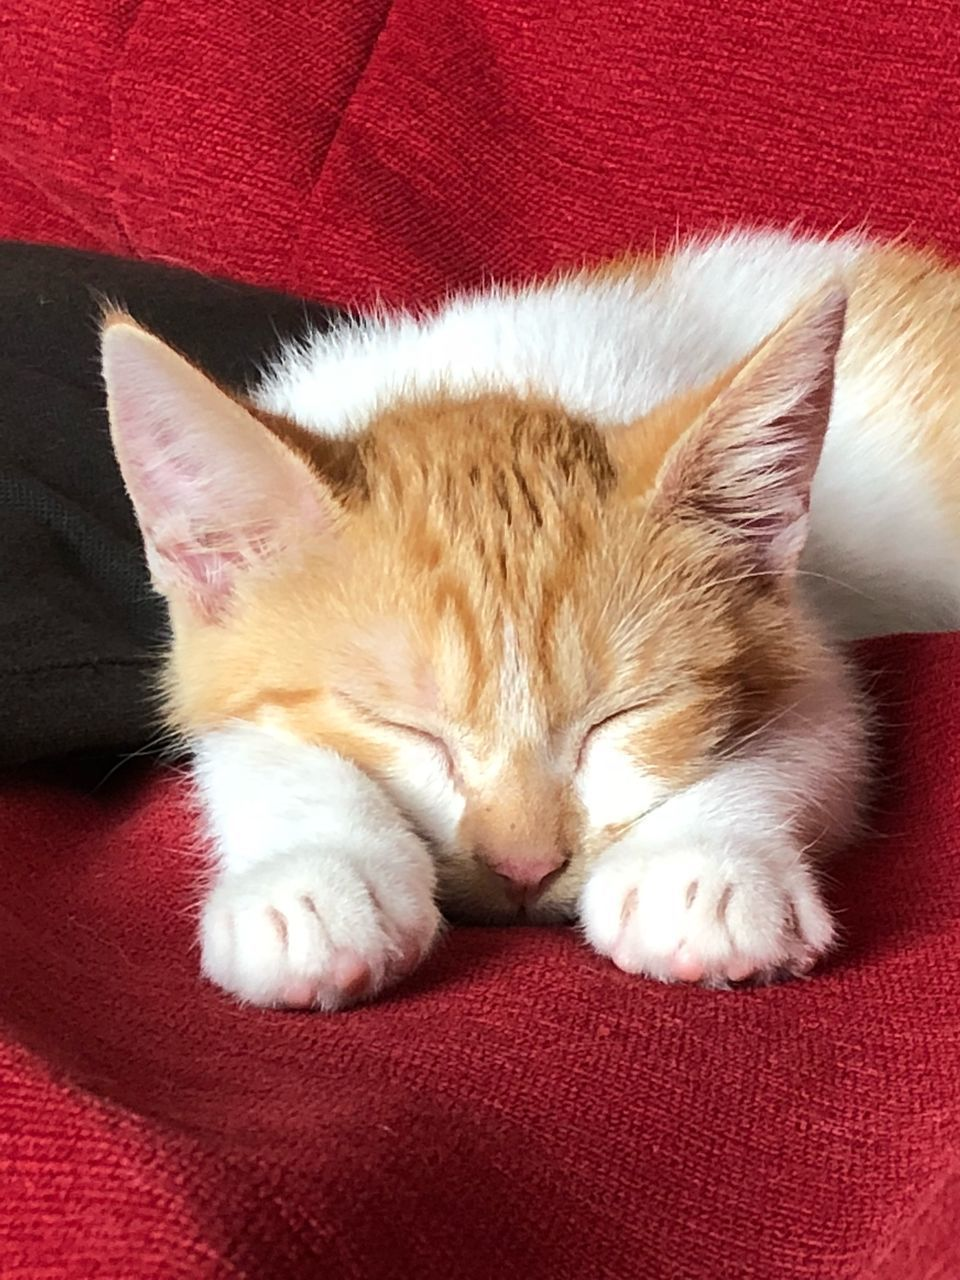 pets, domestic, cat, domestic cat, domestic animals, mammal, feline, relaxation, animal, one animal, animal themes, resting, red, furniture, vertebrate, sleeping, sofa, no people, indoors, close-up, whisker, napping